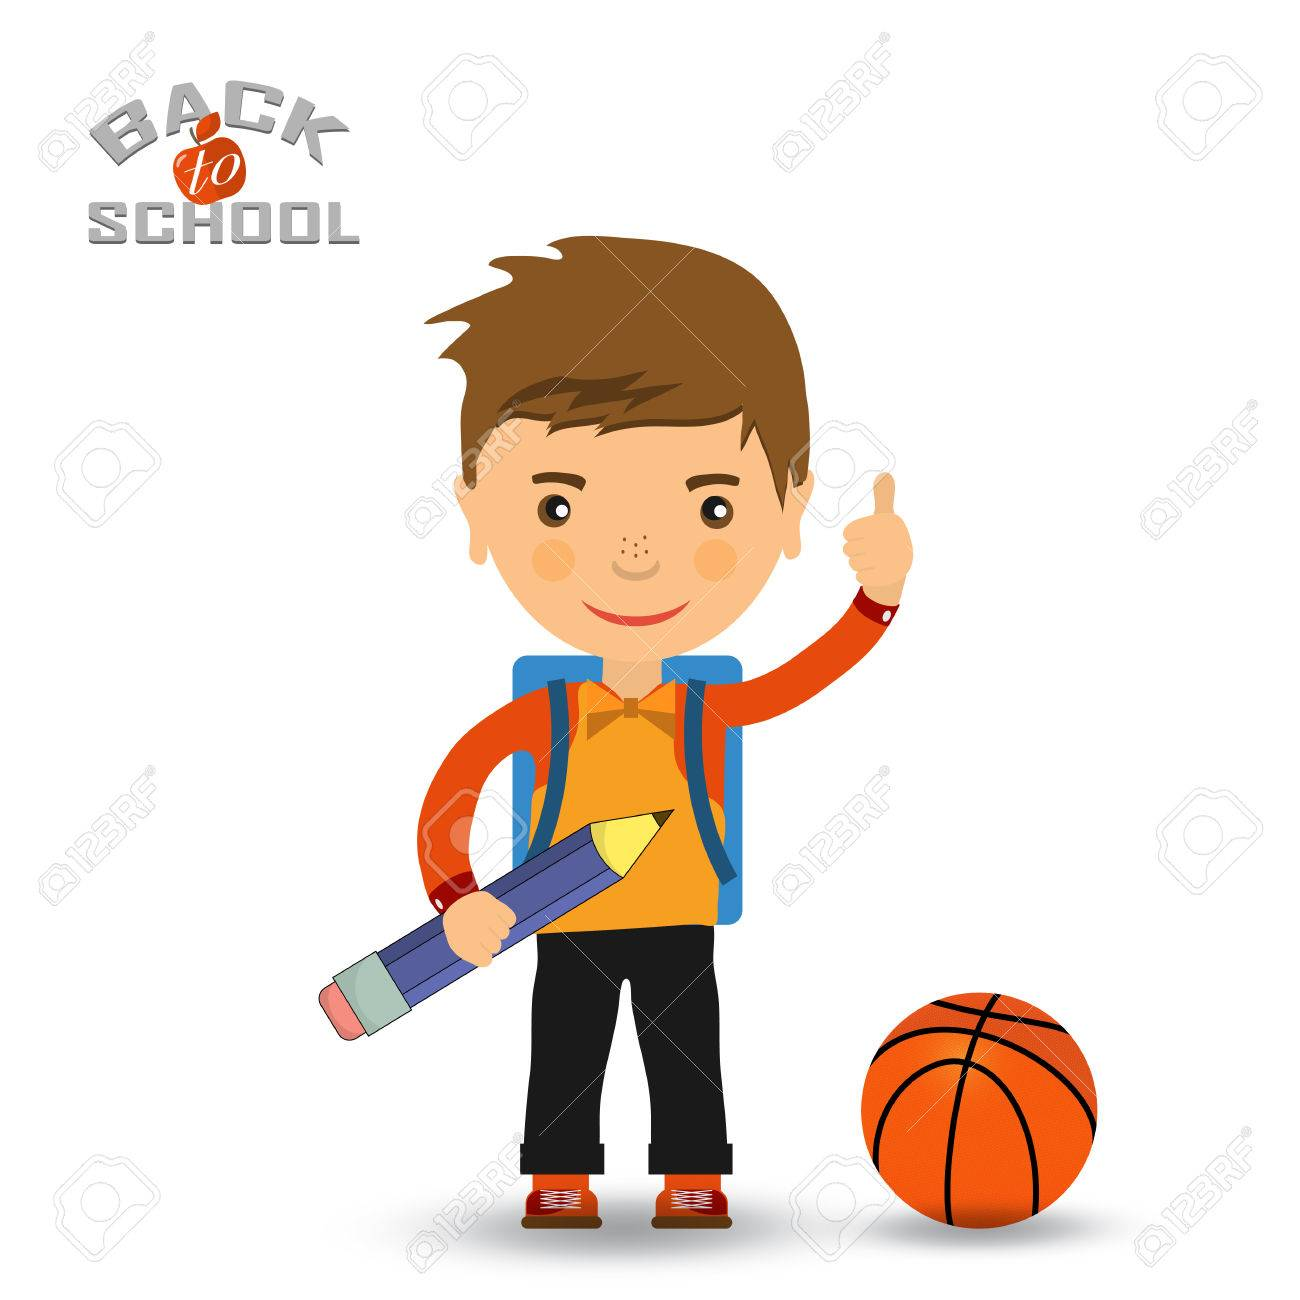 Back to school design. Vector illustration - schoolboy showing OK sign and  a basketball Stock